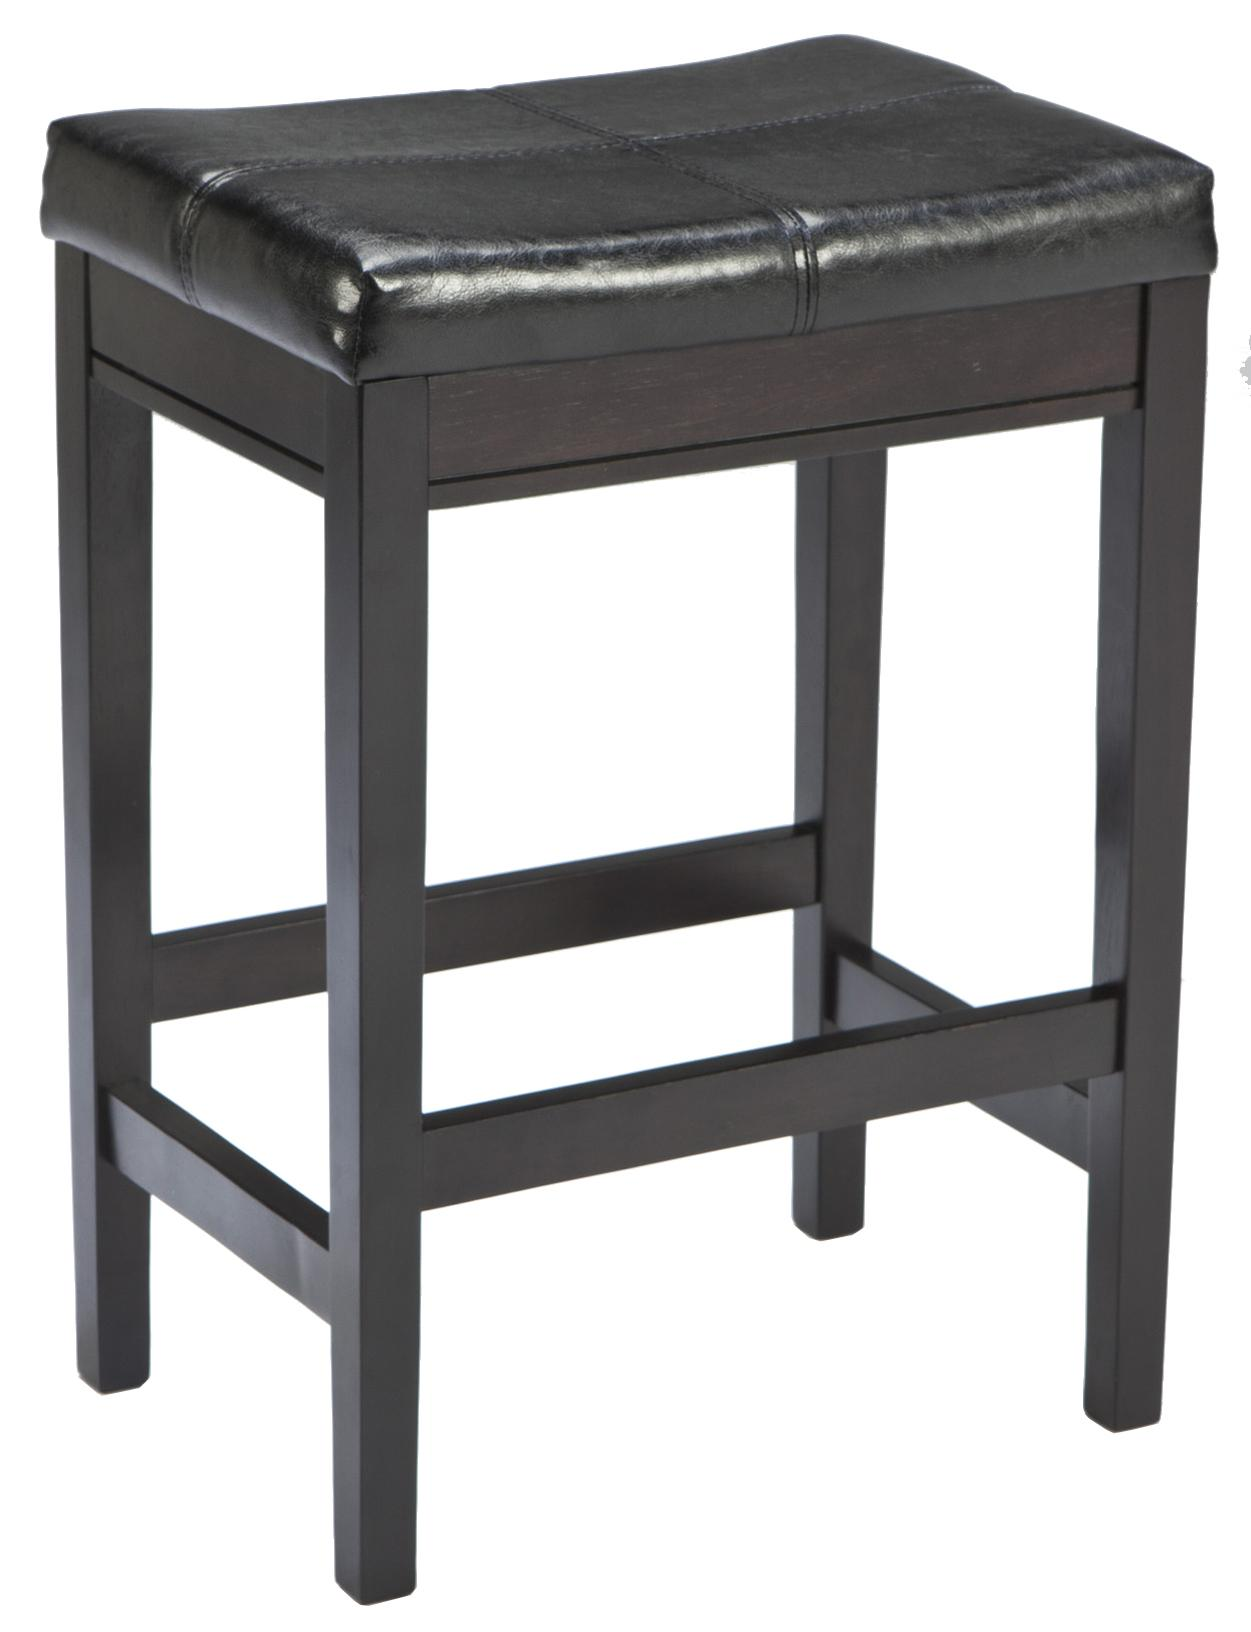 Signature Design by Ashley Kimonte Upholstered Barstool - Item Number: D250-224